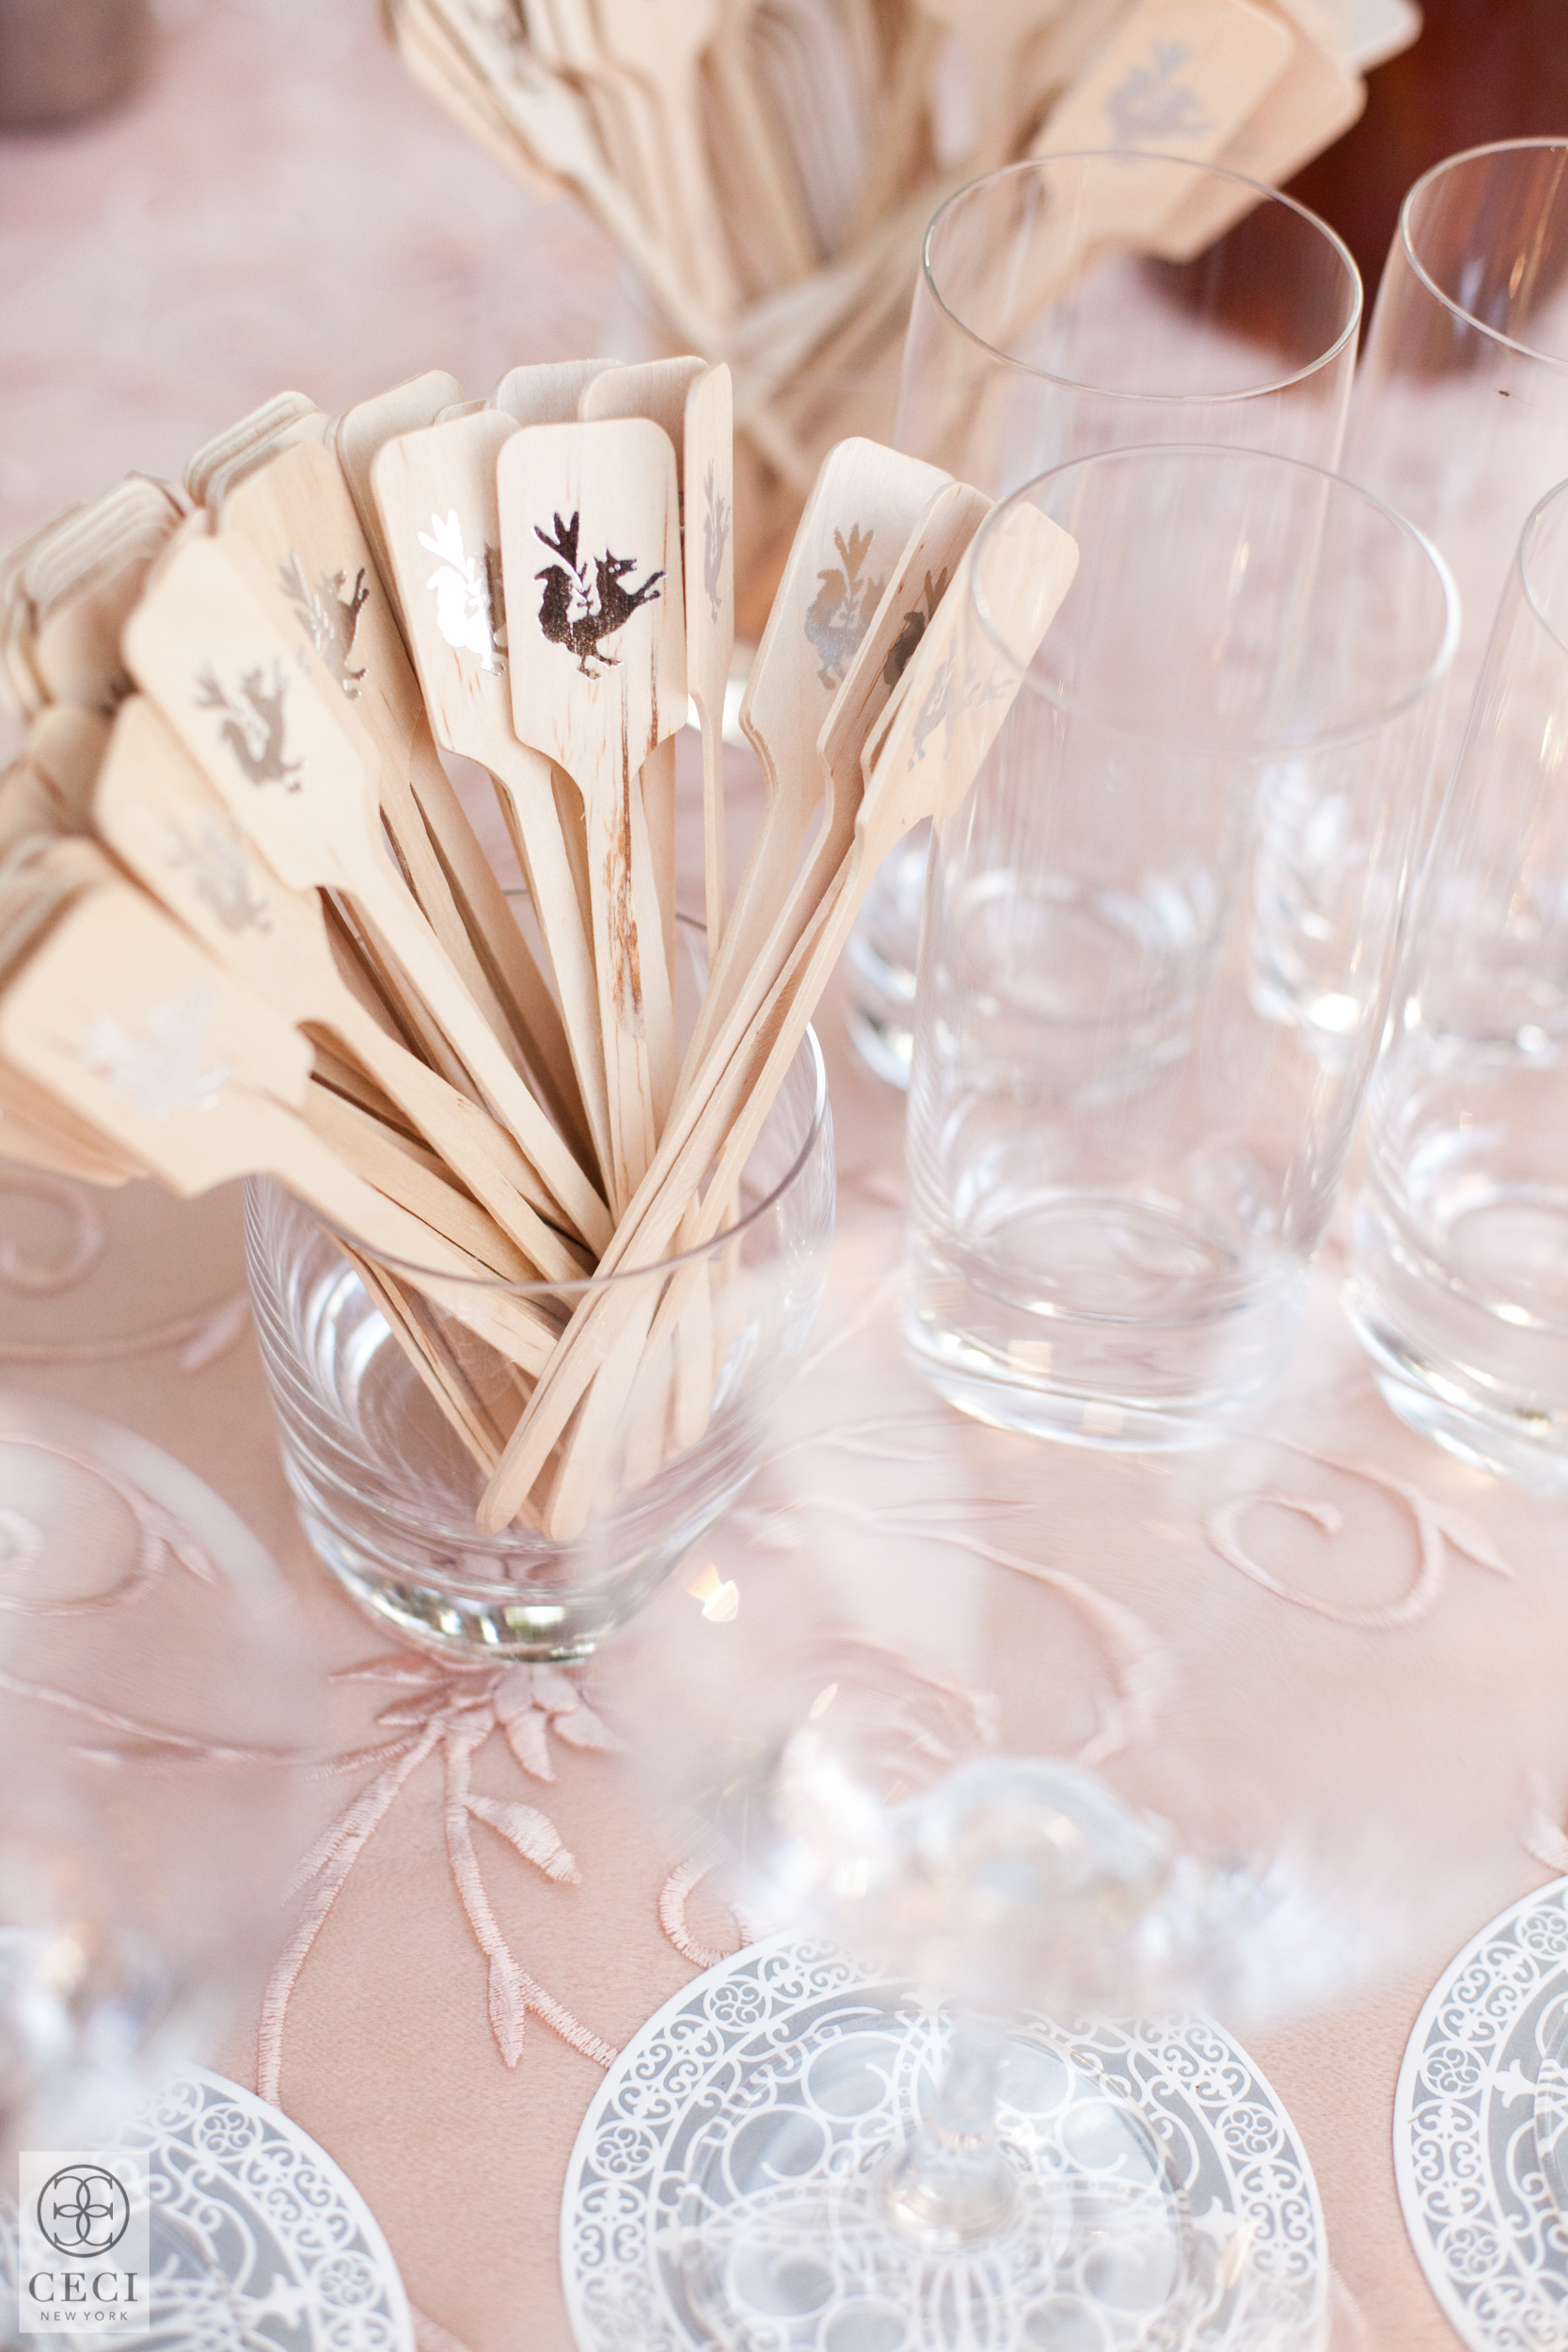 Ceci_New_York_Custom_Luxury_Wedding_LaserCut_Stationery_Personalized_Couture_Foil_Stamping_Mexico_Otomi_Chic_-19.jpg